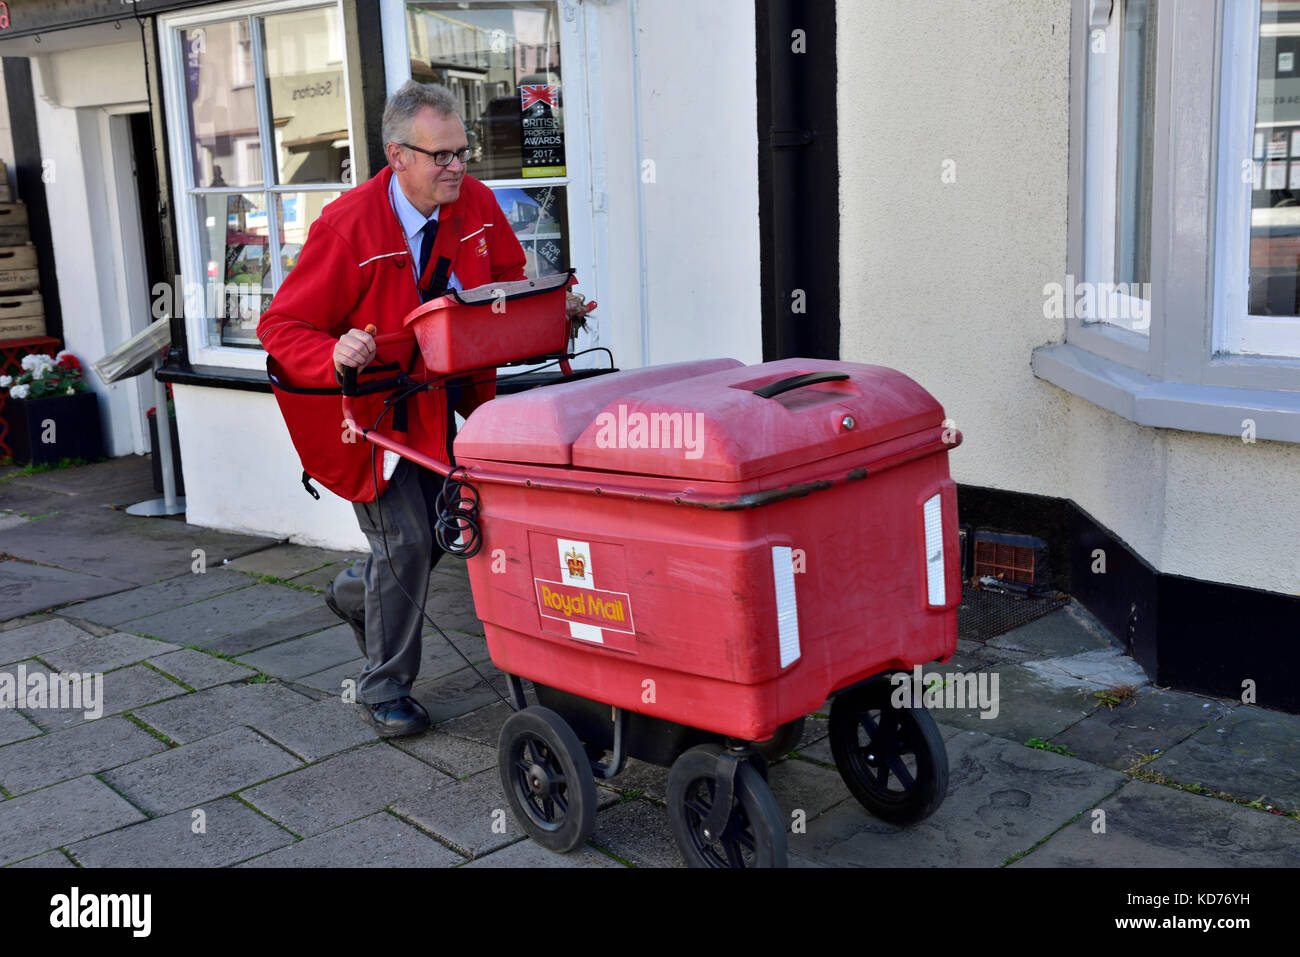 Postman pushing cart making deliveries on rounds in small English market town of Thornbury, South Gloucestershire - Stock Image